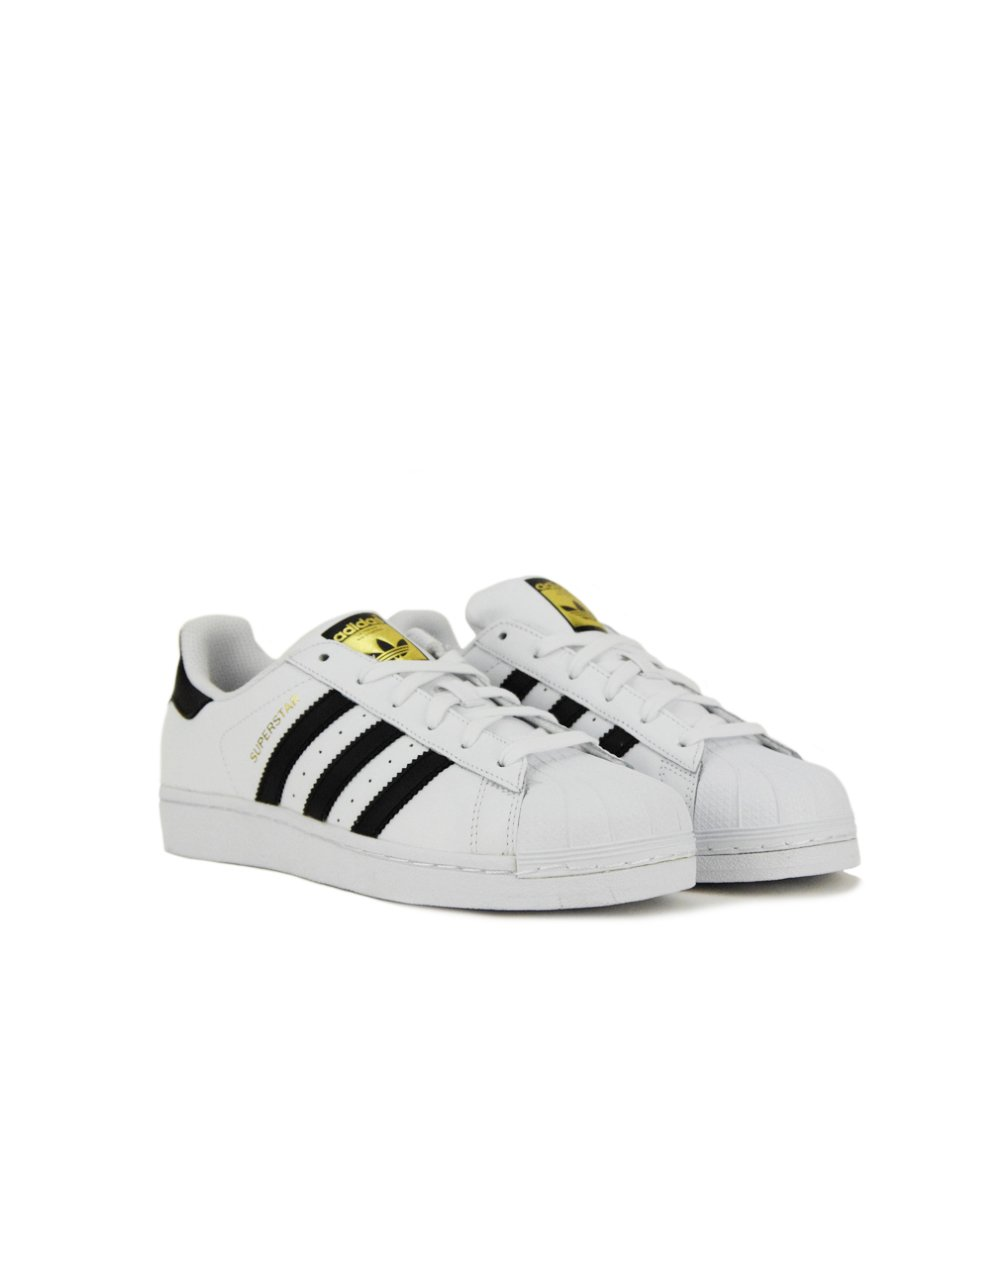 Adidas Superstar J (FU7712) White/Black